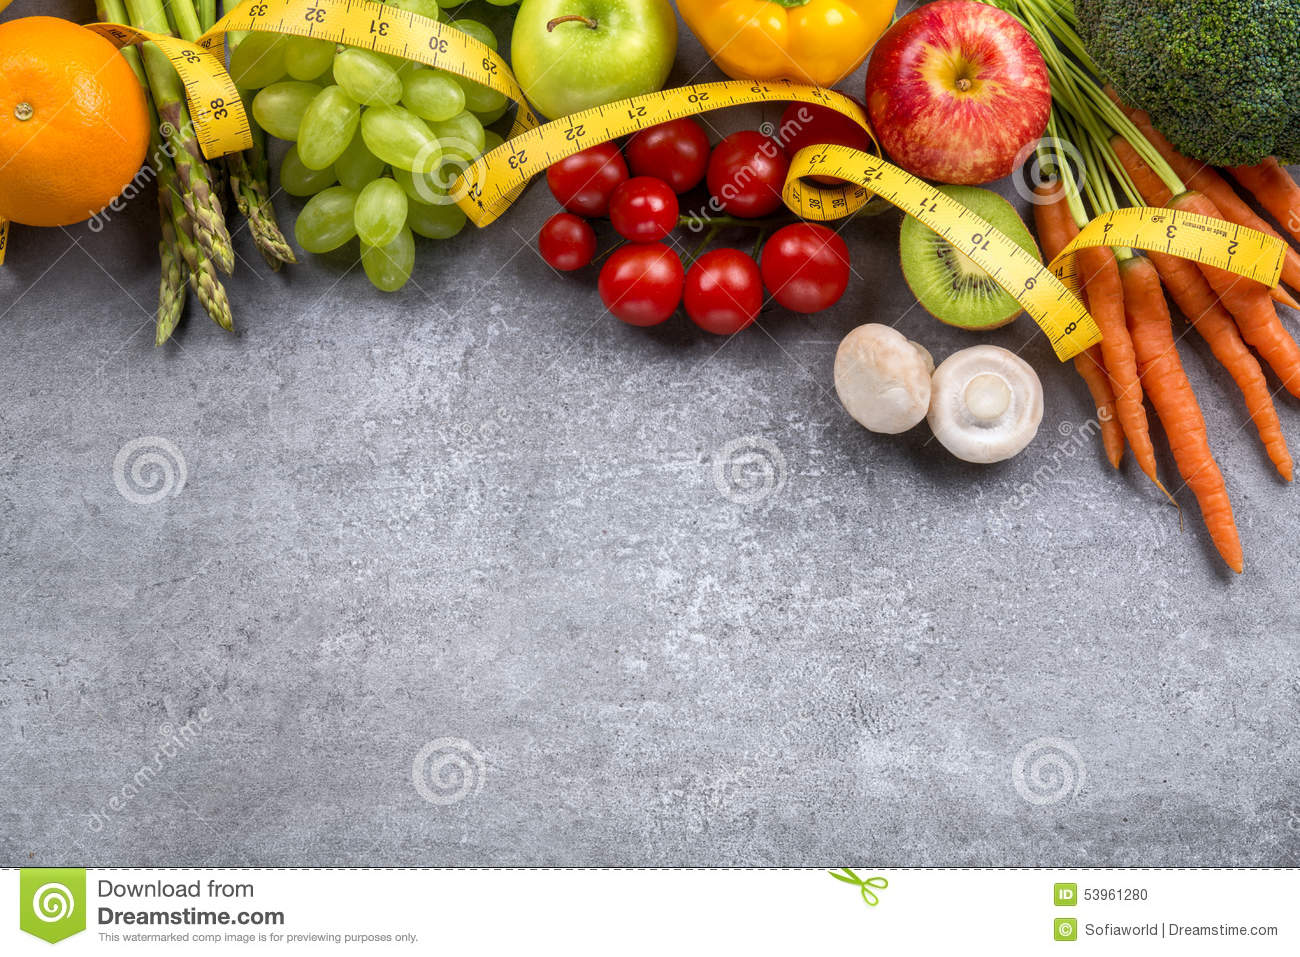 Stupendous Fruits Vegetables And Tape Measure In Diet Stock Photo Download Free Architecture Designs Scobabritishbridgeorg